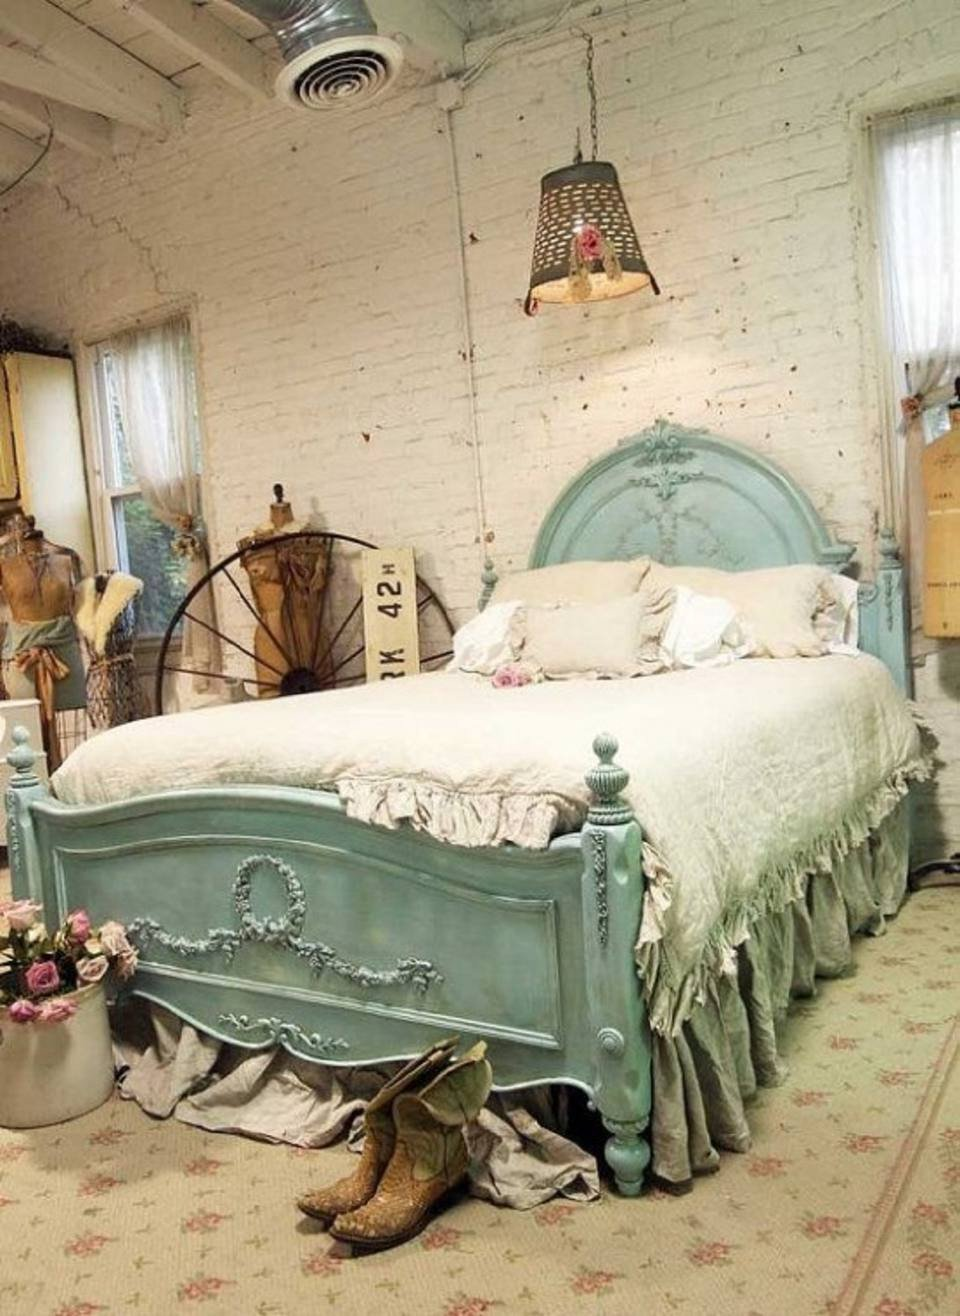 1940s Bedroom Furniture Styles Inspirational Tips and Ideas for Decorating A Bedroom In Vintage Style